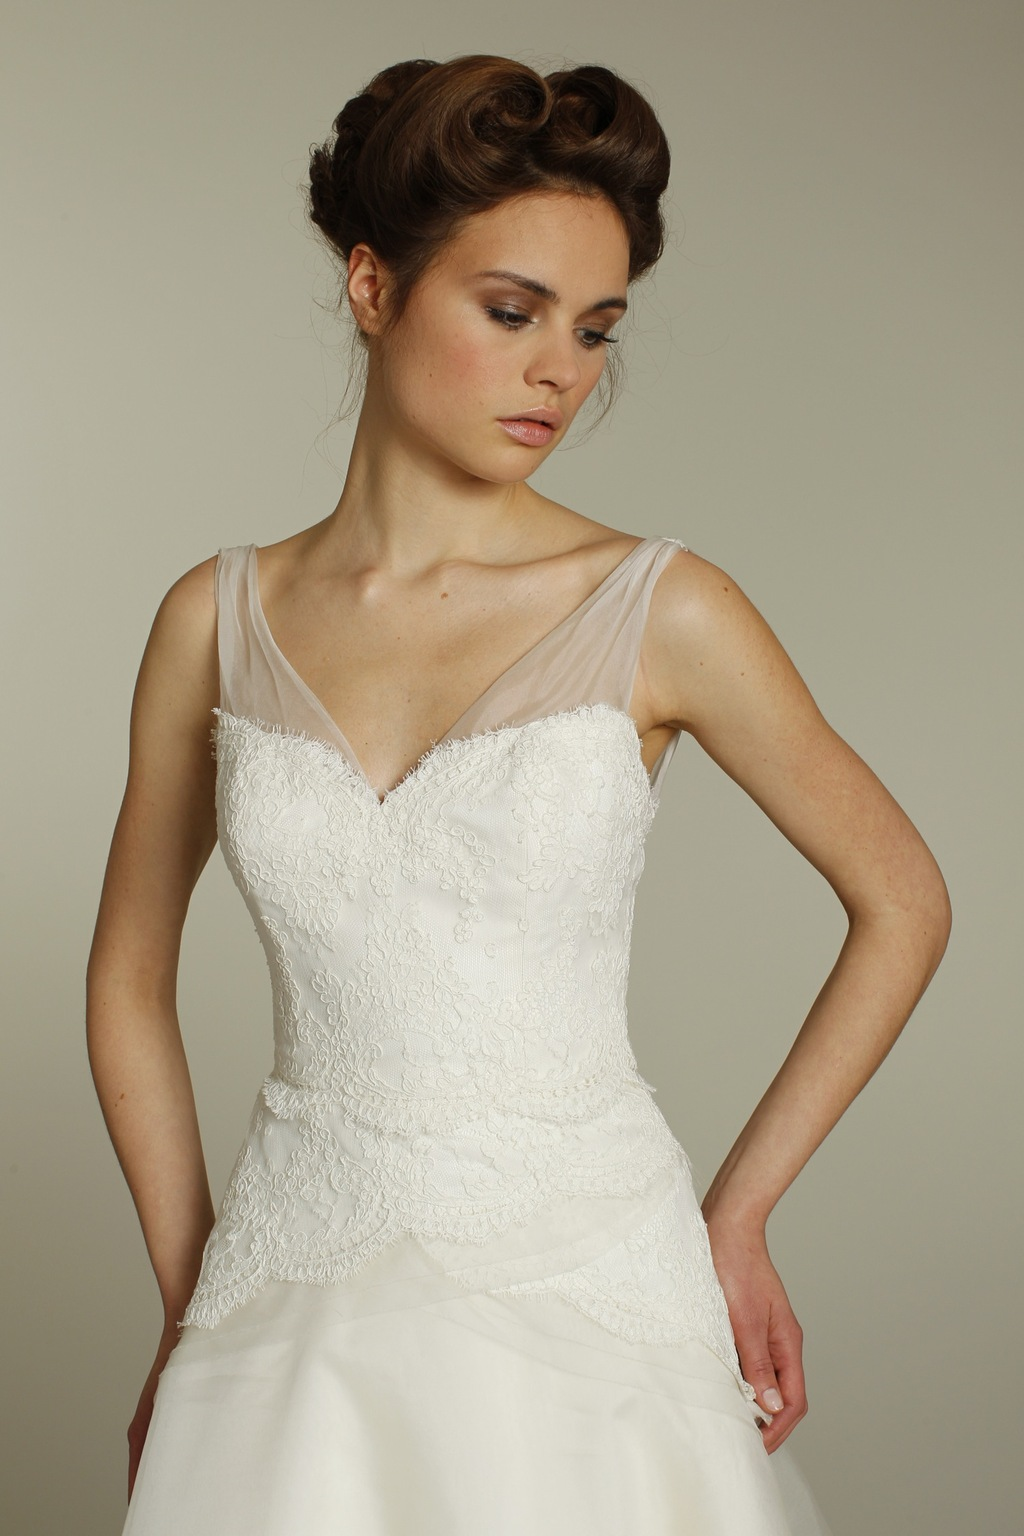 Ivory A Line Alvina Valenta Wedding Dress With On Trend Sheer Illusion Straps And Lace Applique